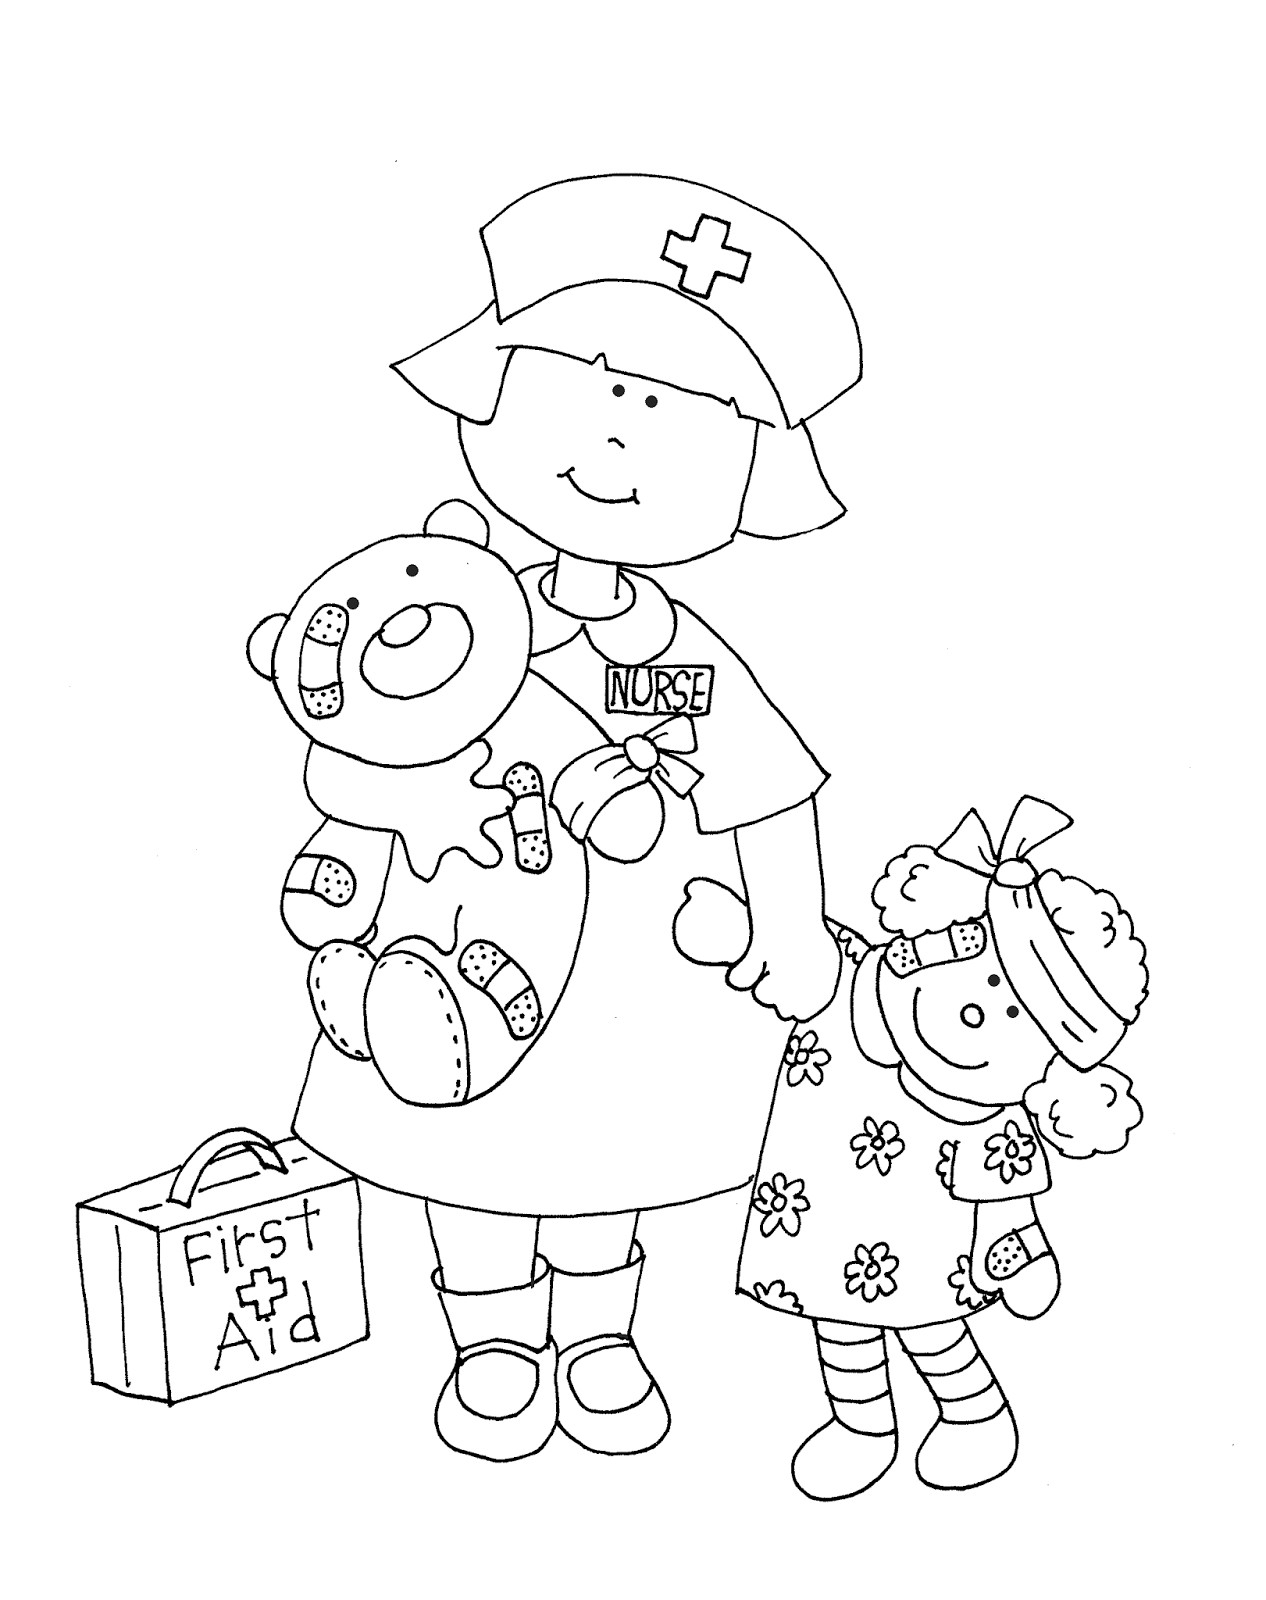 Nurse Coloring Pages For Preschool At Getcolorings